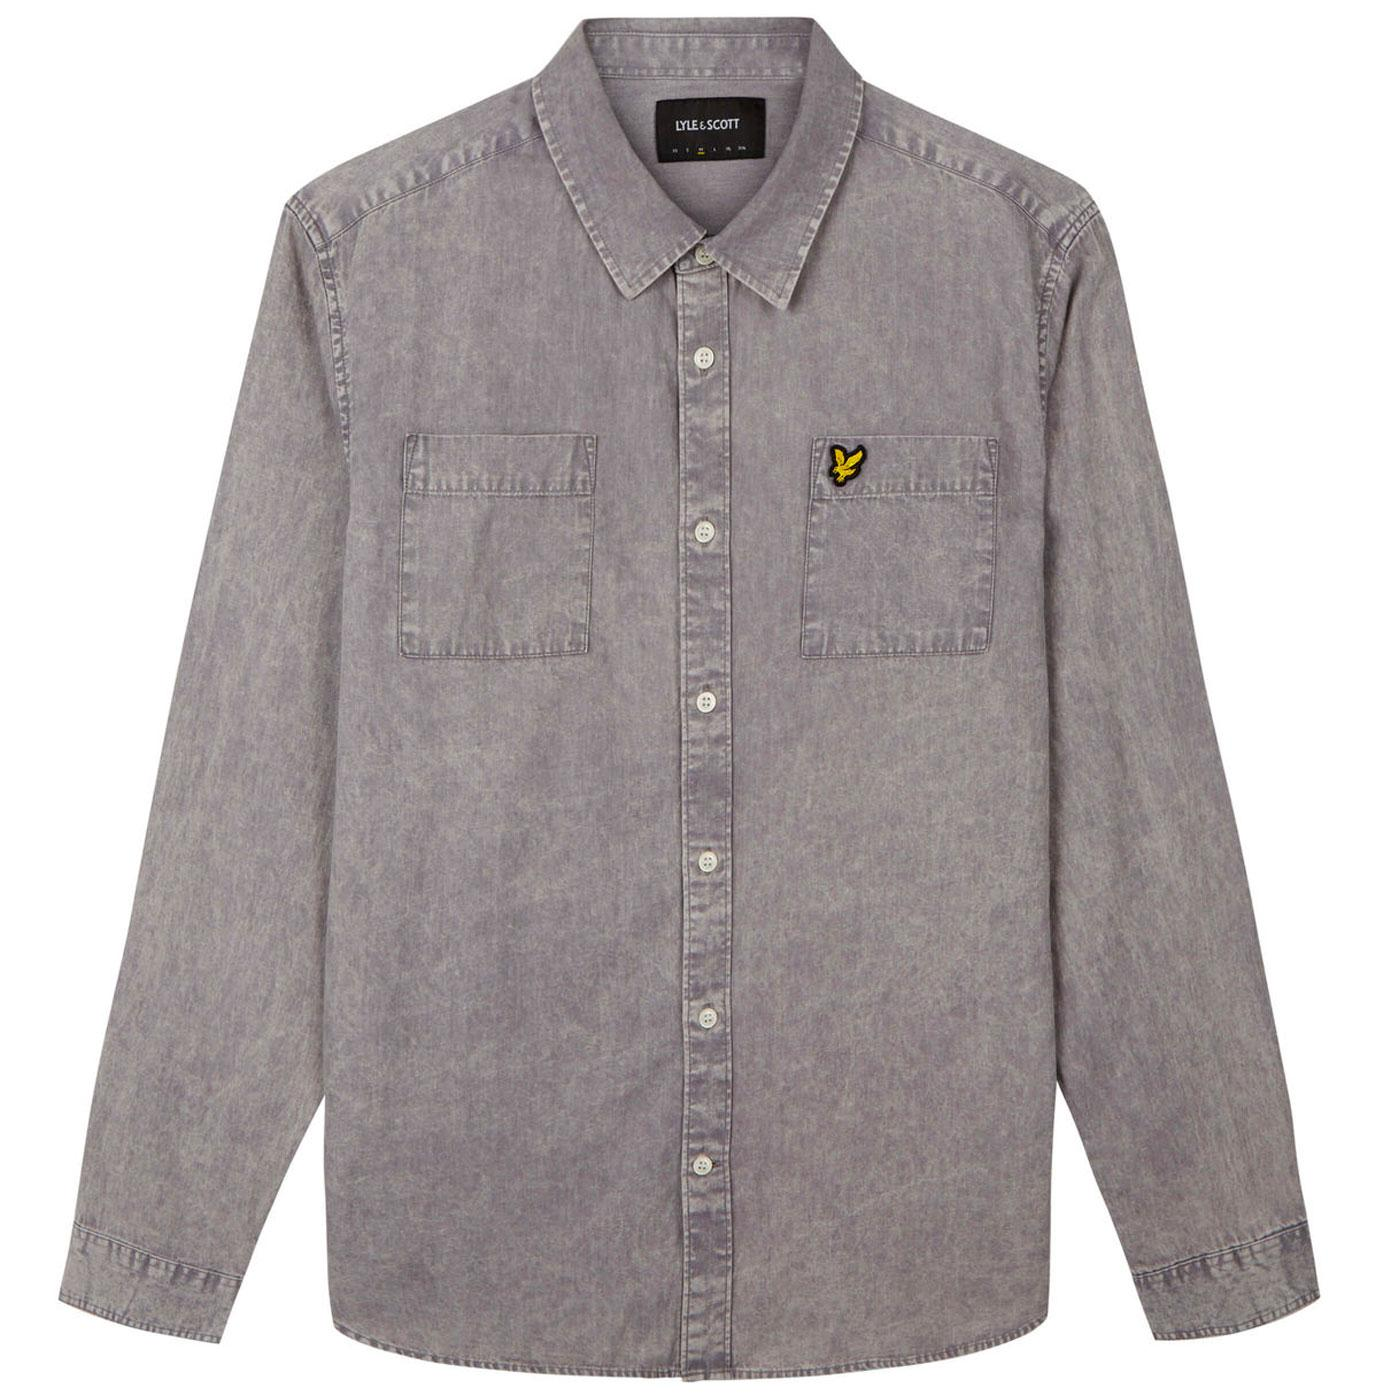 LYLE & SCOTT Retro Sun bleached Shirt DOLPHIN GREY